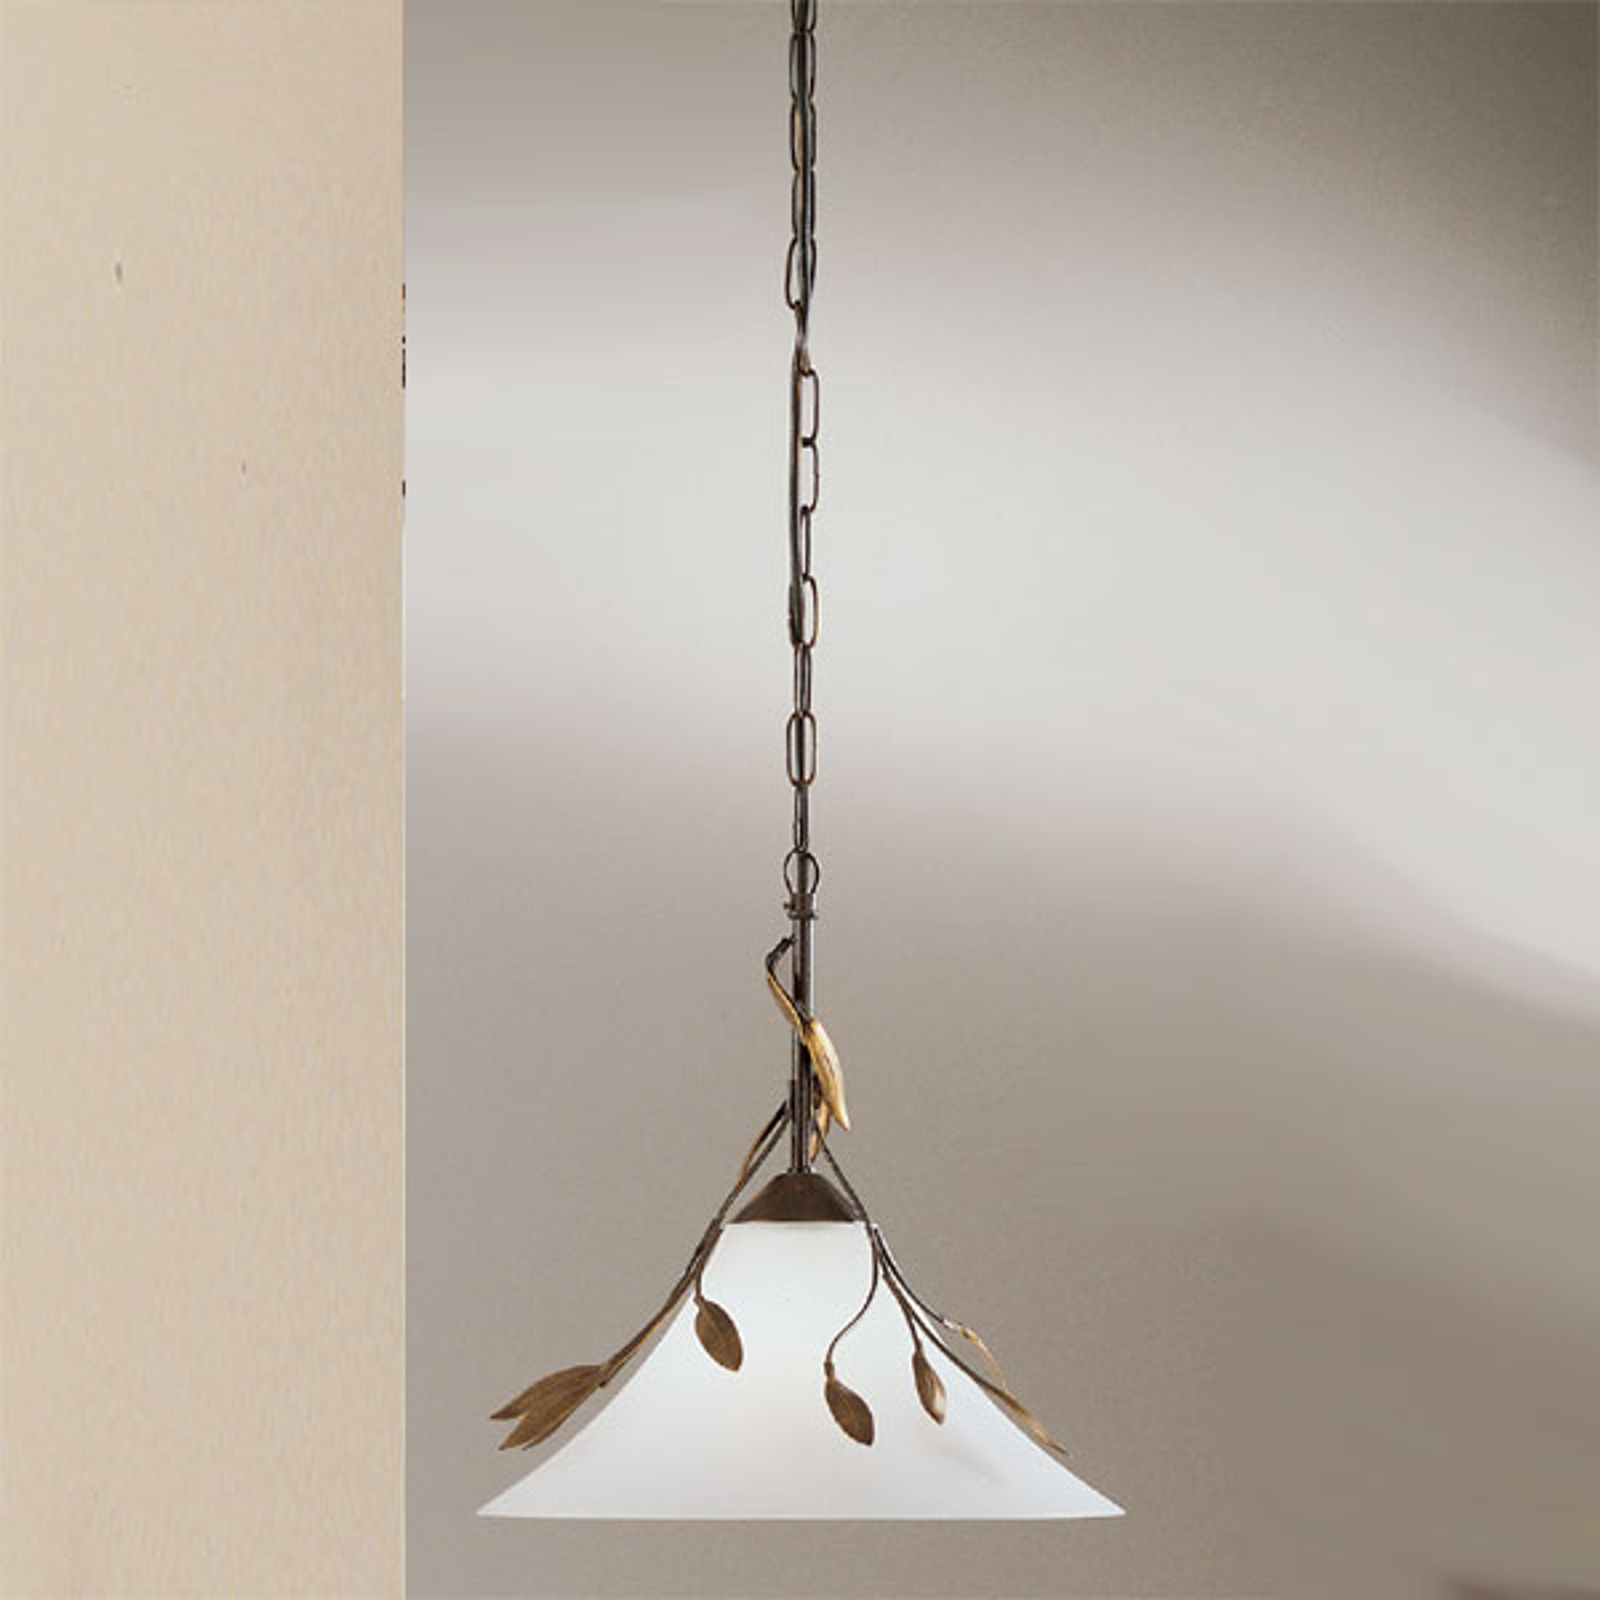 Suspension CAMPANA décorative diamètre 30 cm